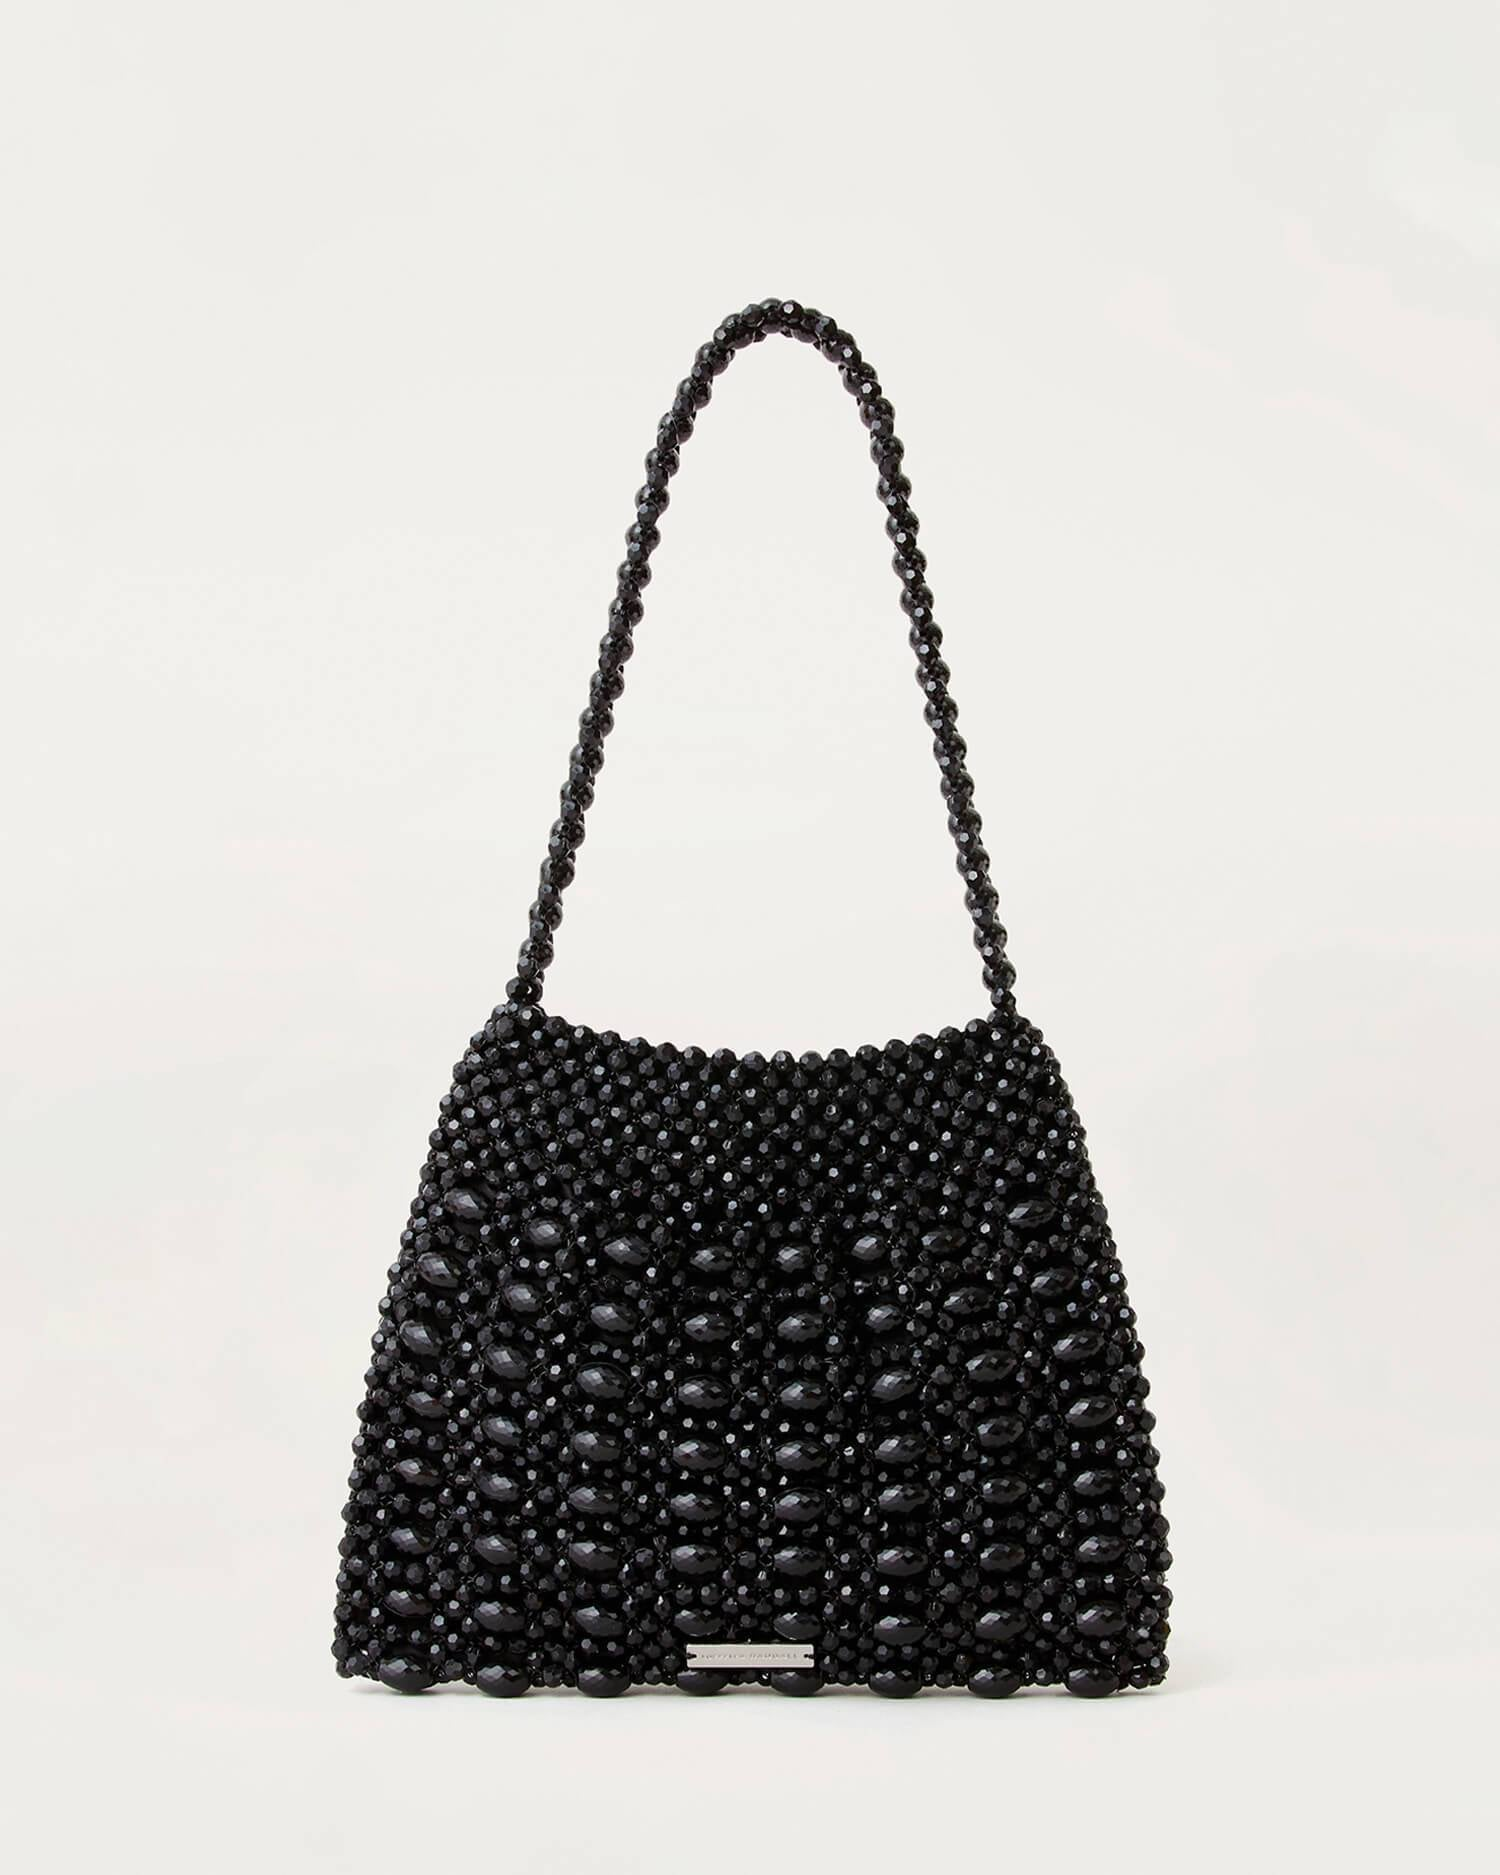 Color:Black beads; Color: Black beads